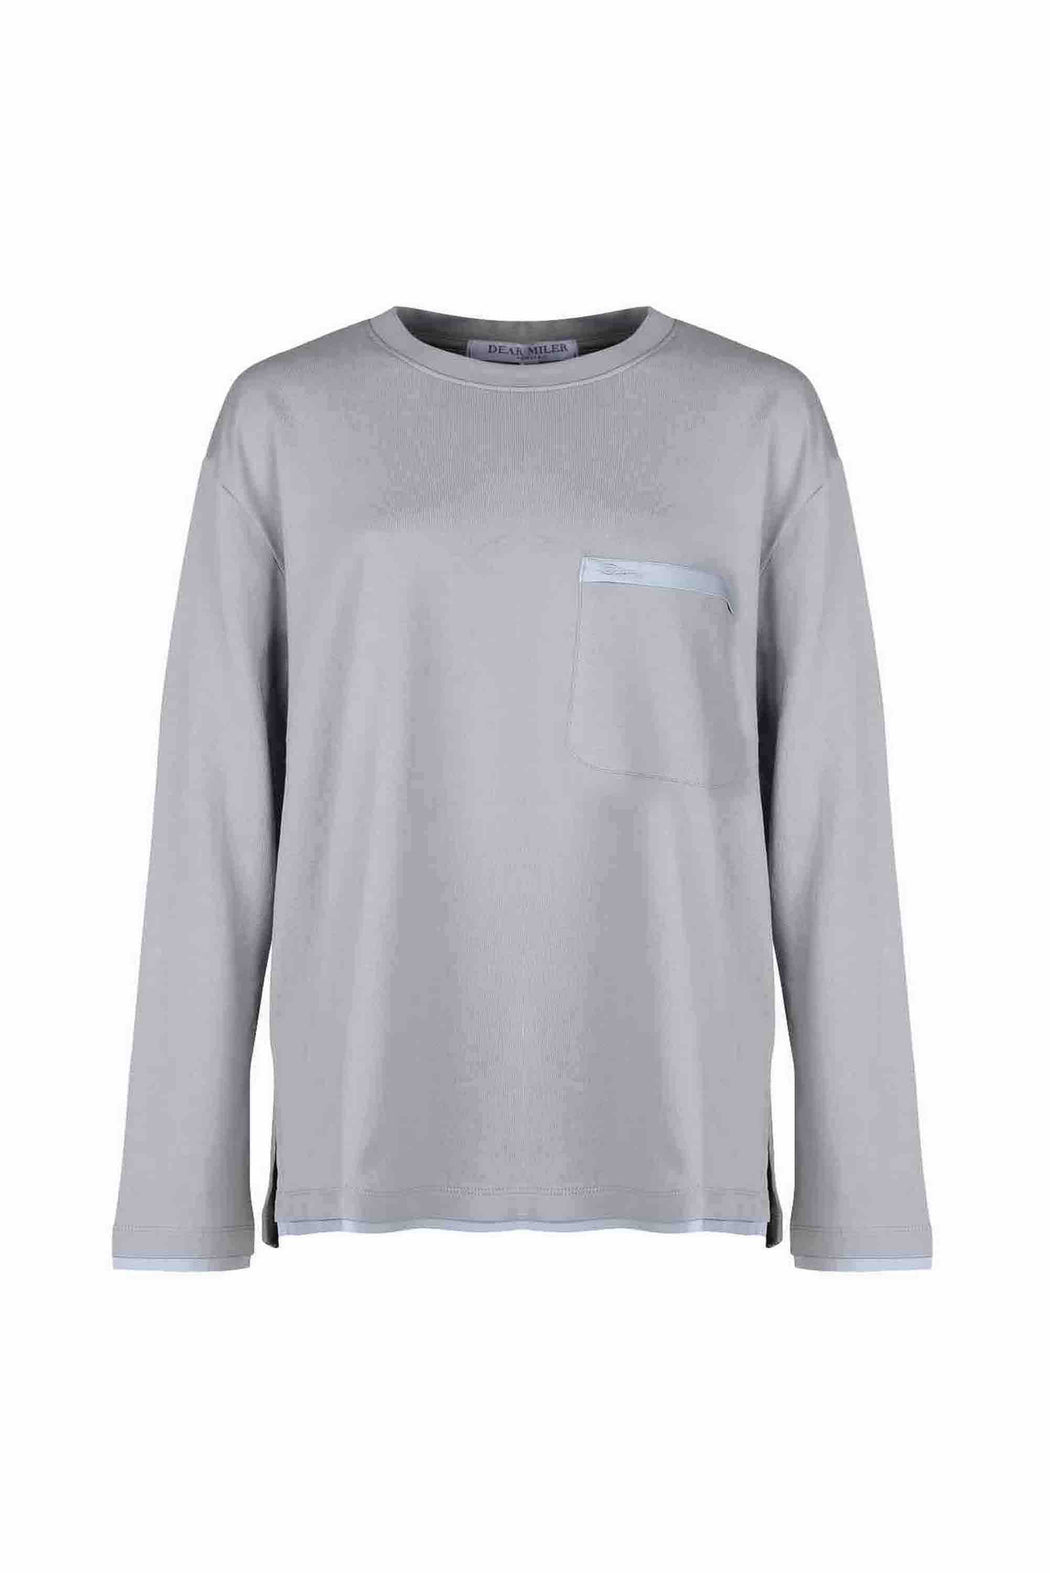 Front view of Men Back Print Long Sleeve T-Shirt made with Organic Cotton in Grey